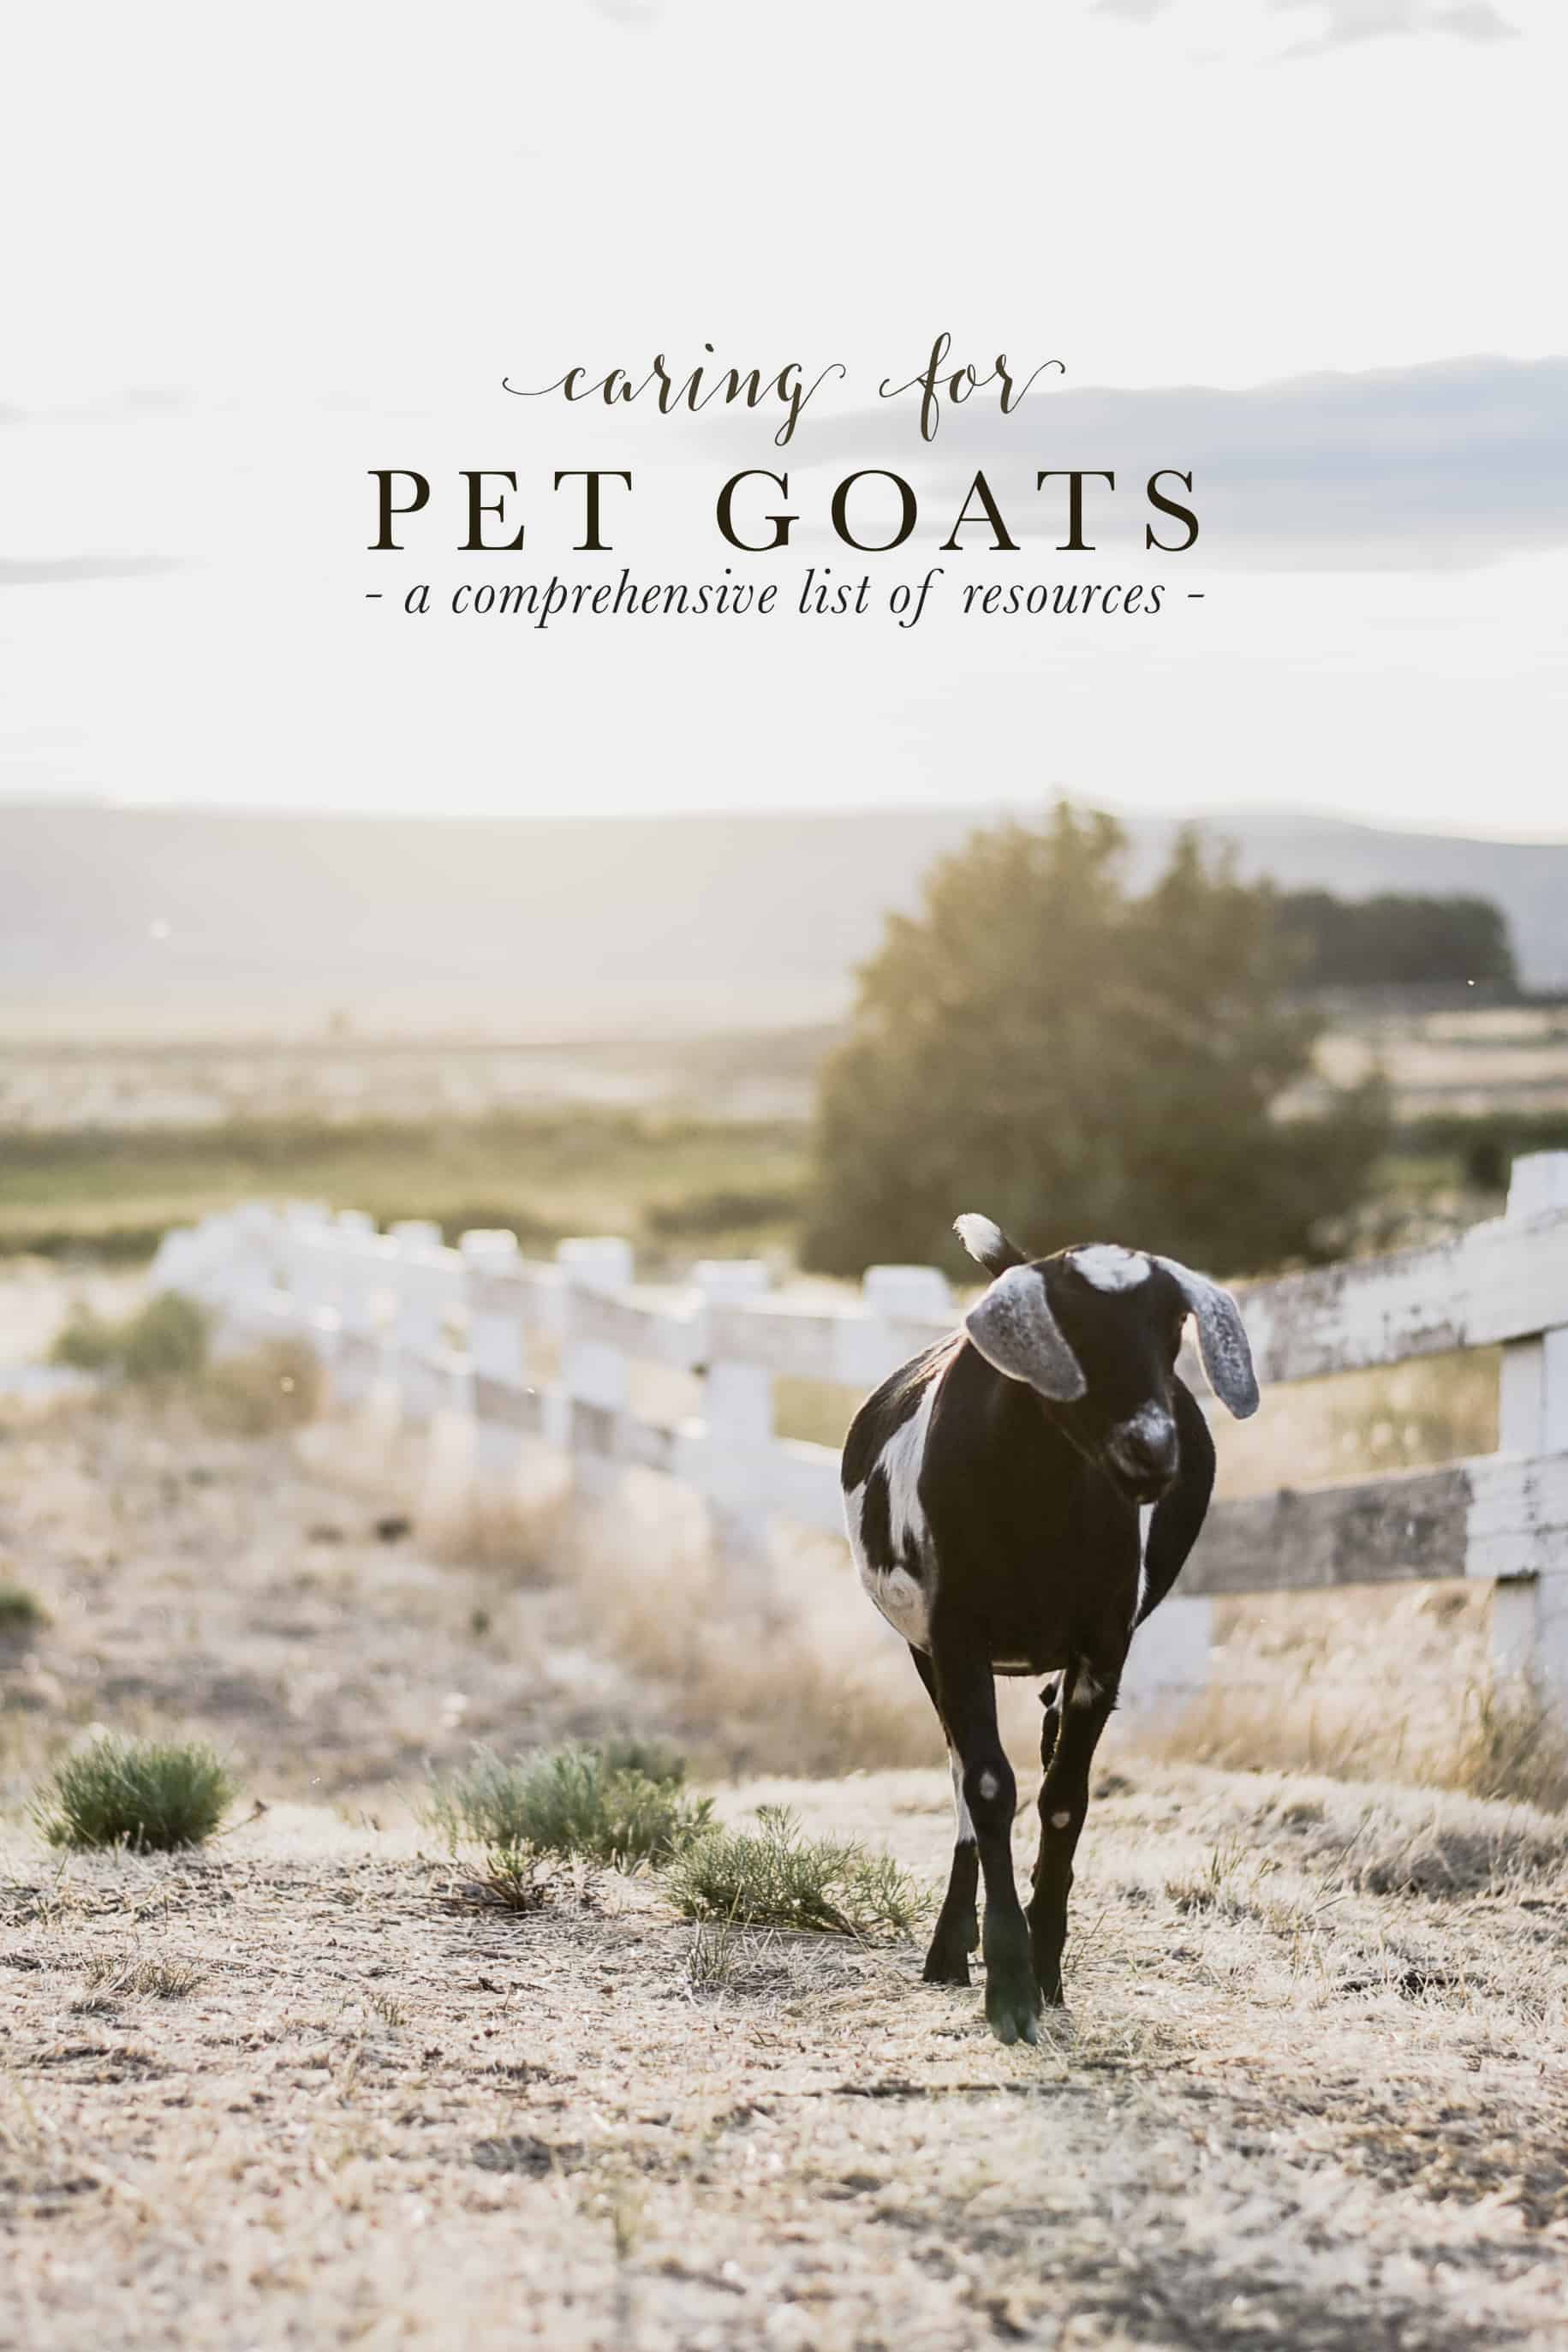 The Best Resources for Goat Care: My two favorite websites for goat health information; full of information for raising goats as pets as well as for income. #goatcare #goatresources #goats